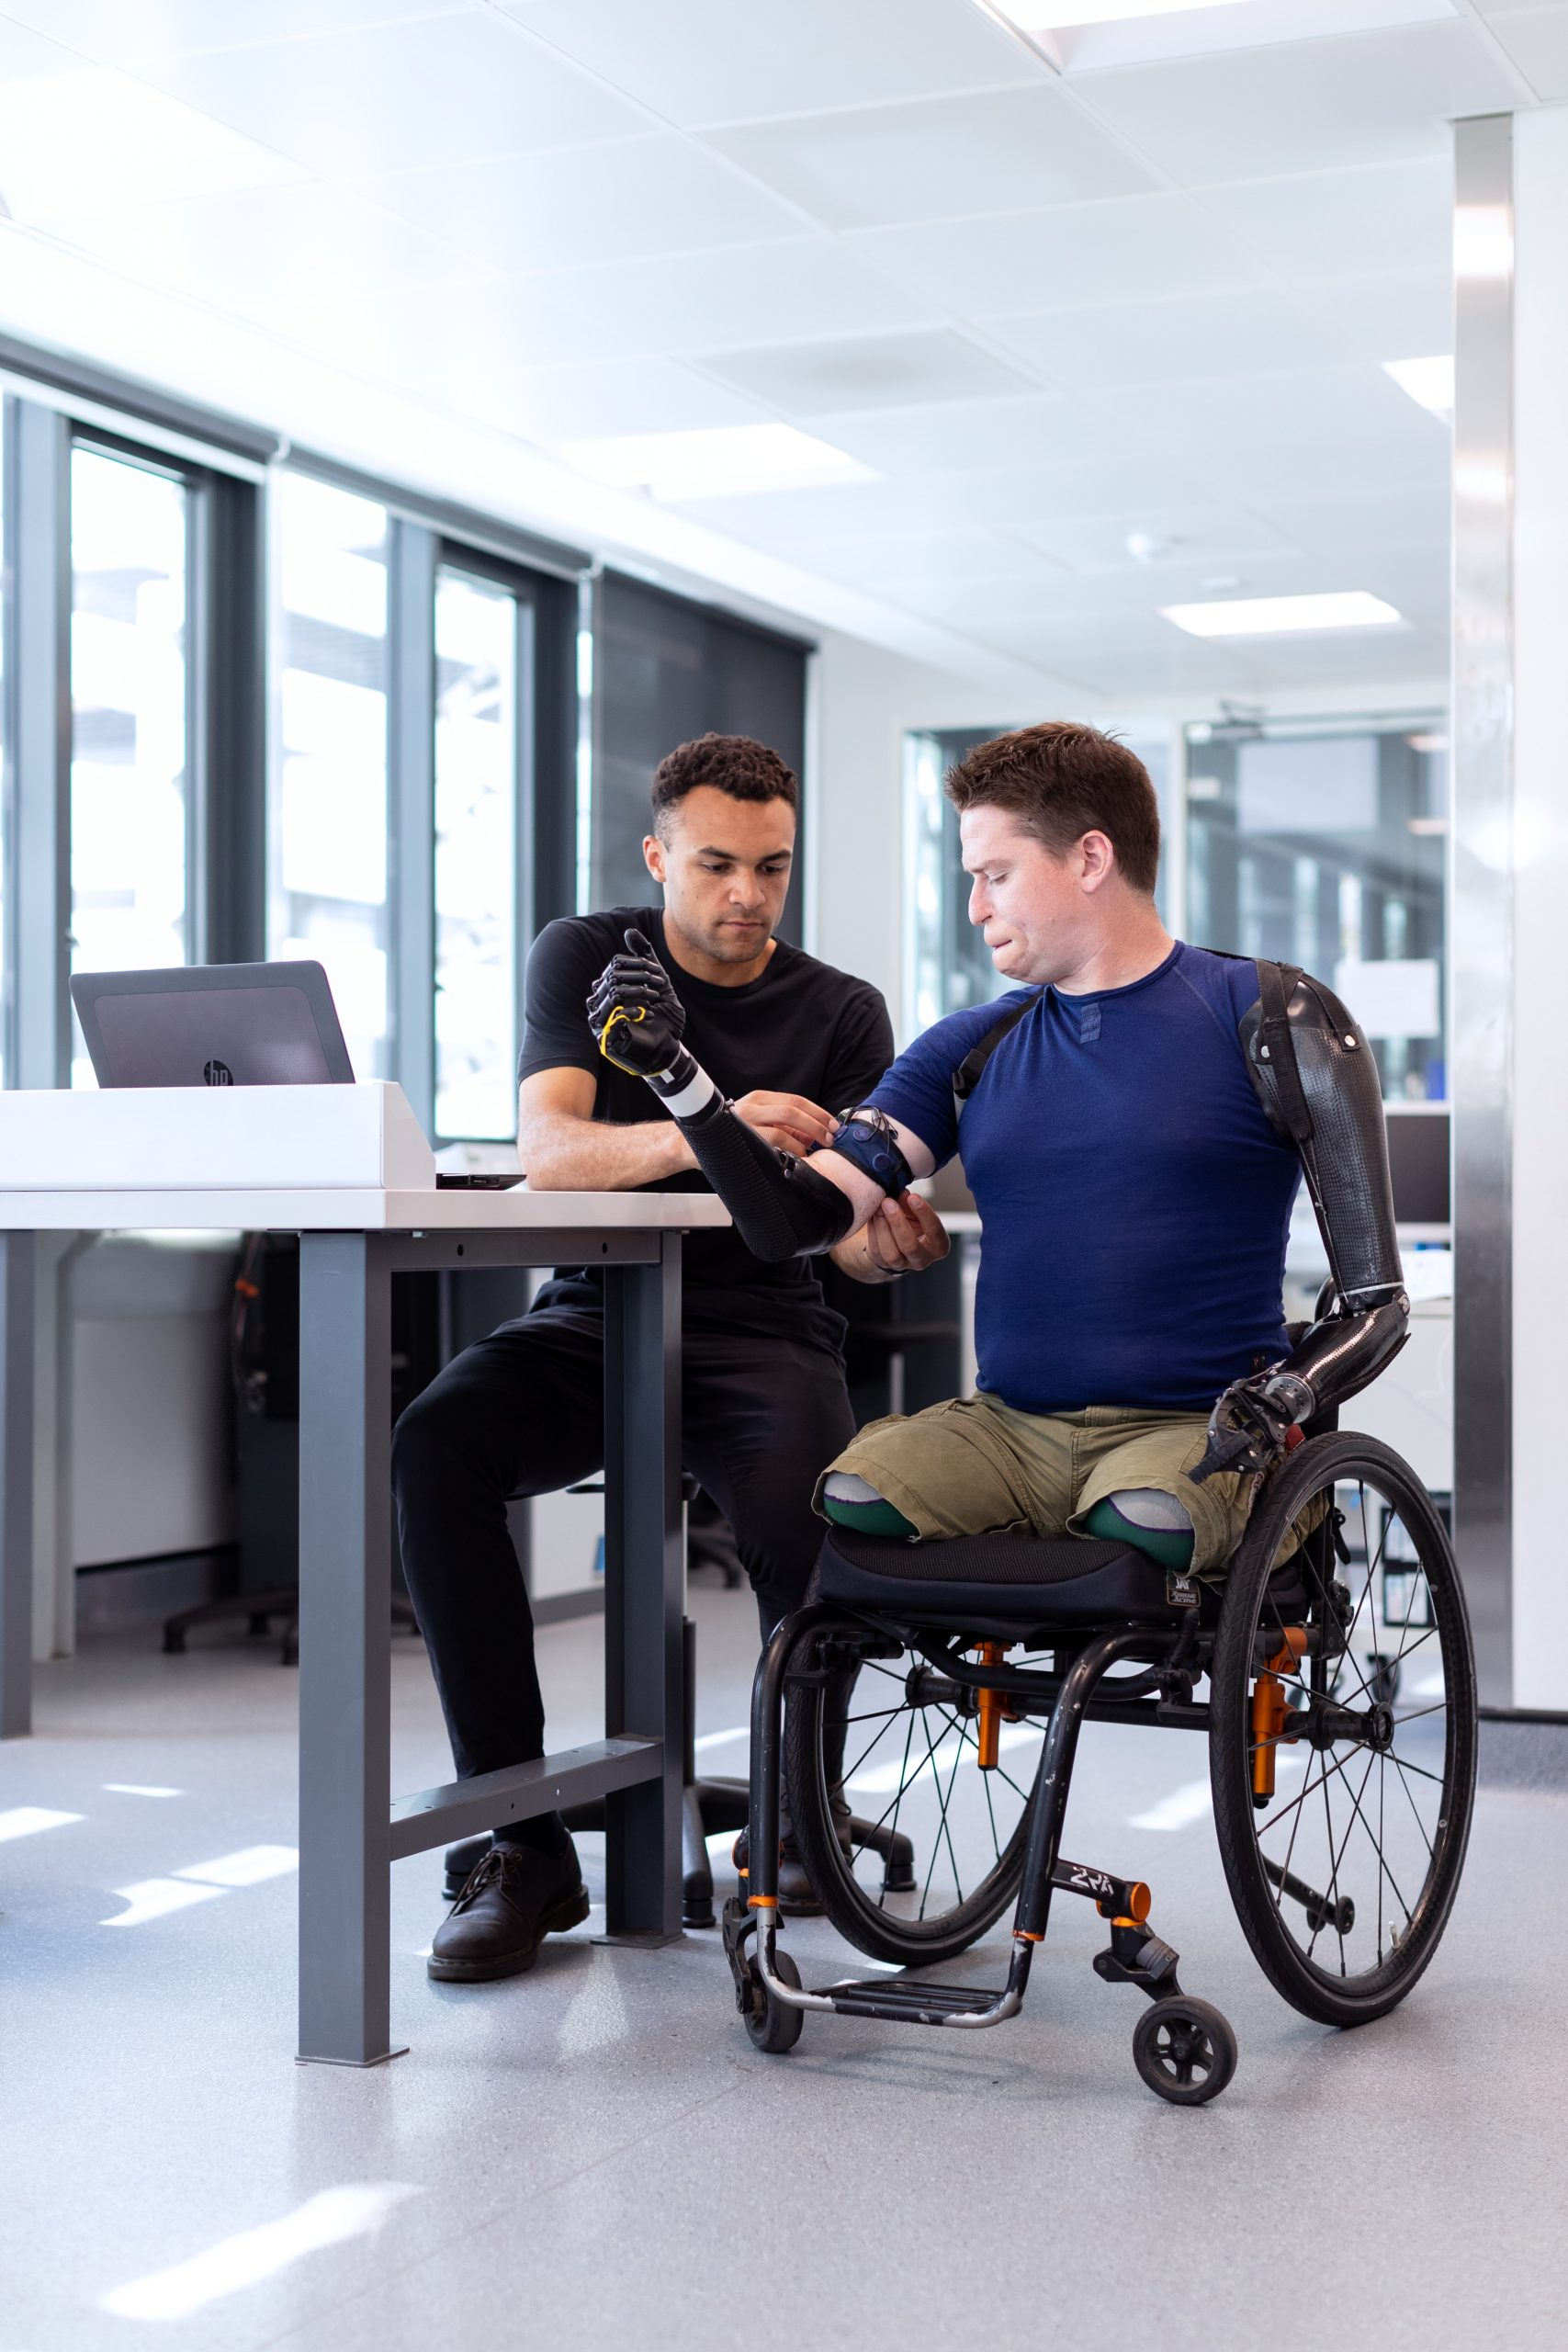 Therapist working with prosthetic and client